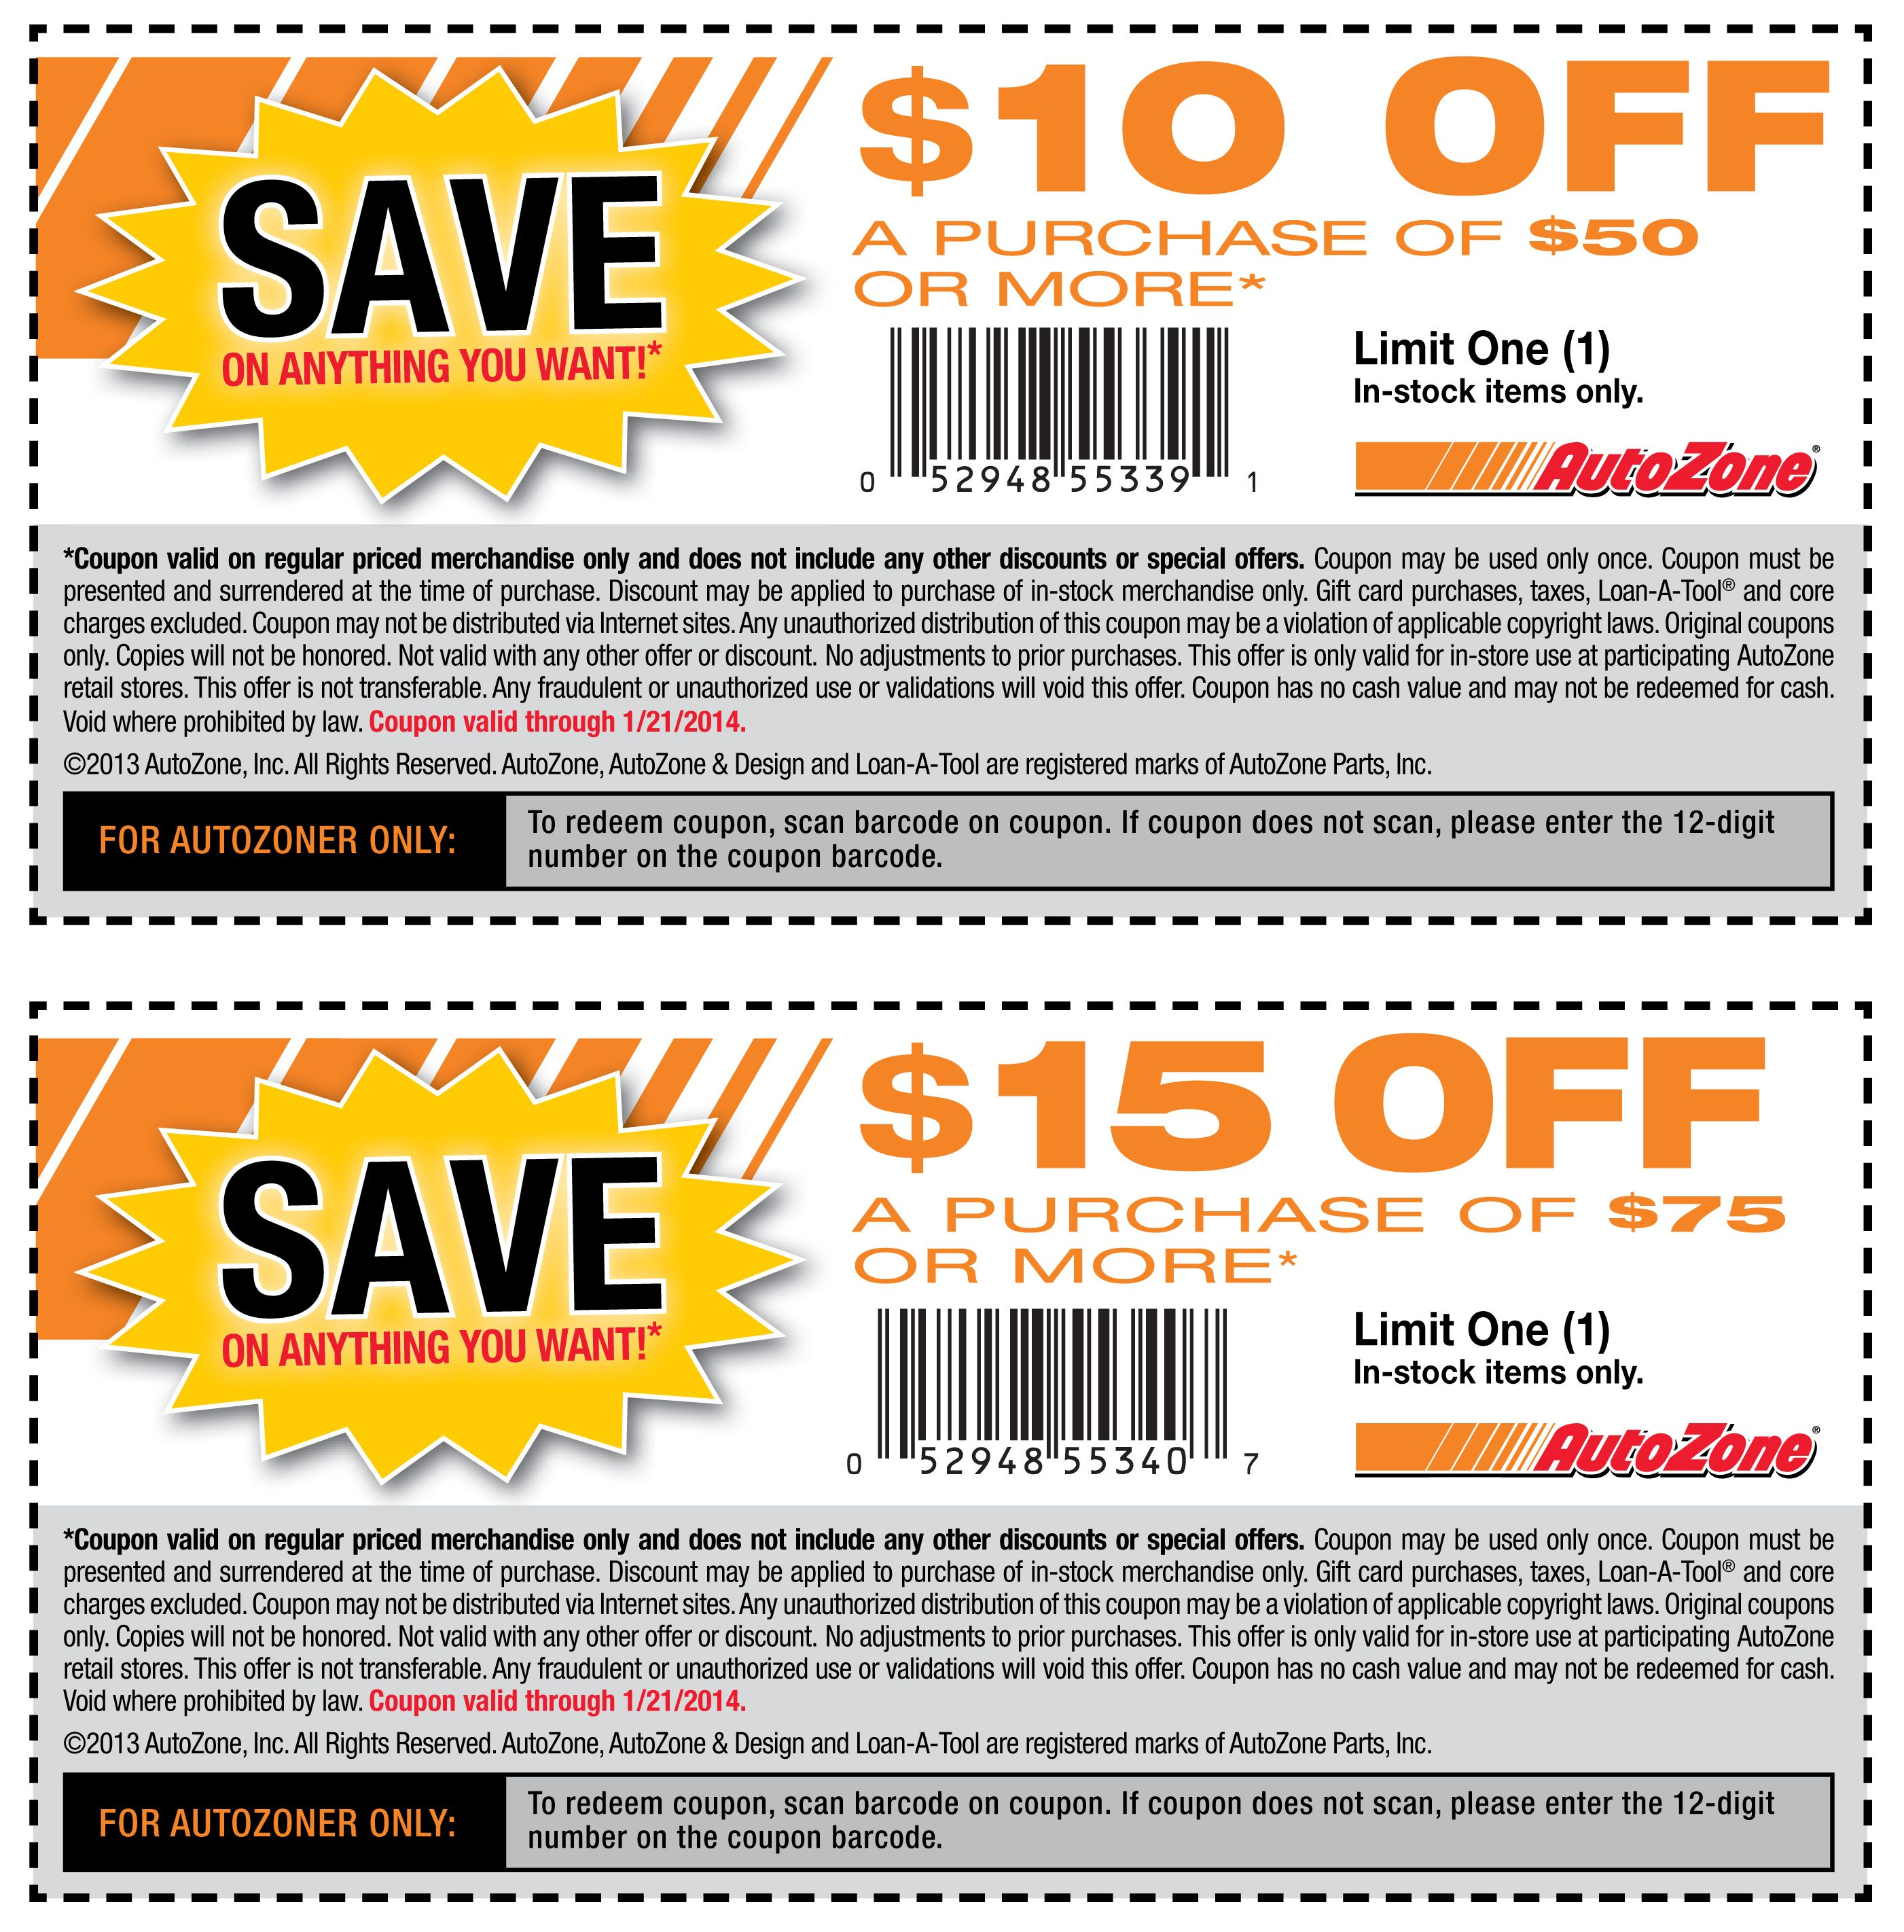 photograph regarding Gnc Printable Coupons 10 Off 50 called Autozone Coupon codes Printable Discount coupons Printable discount coupons